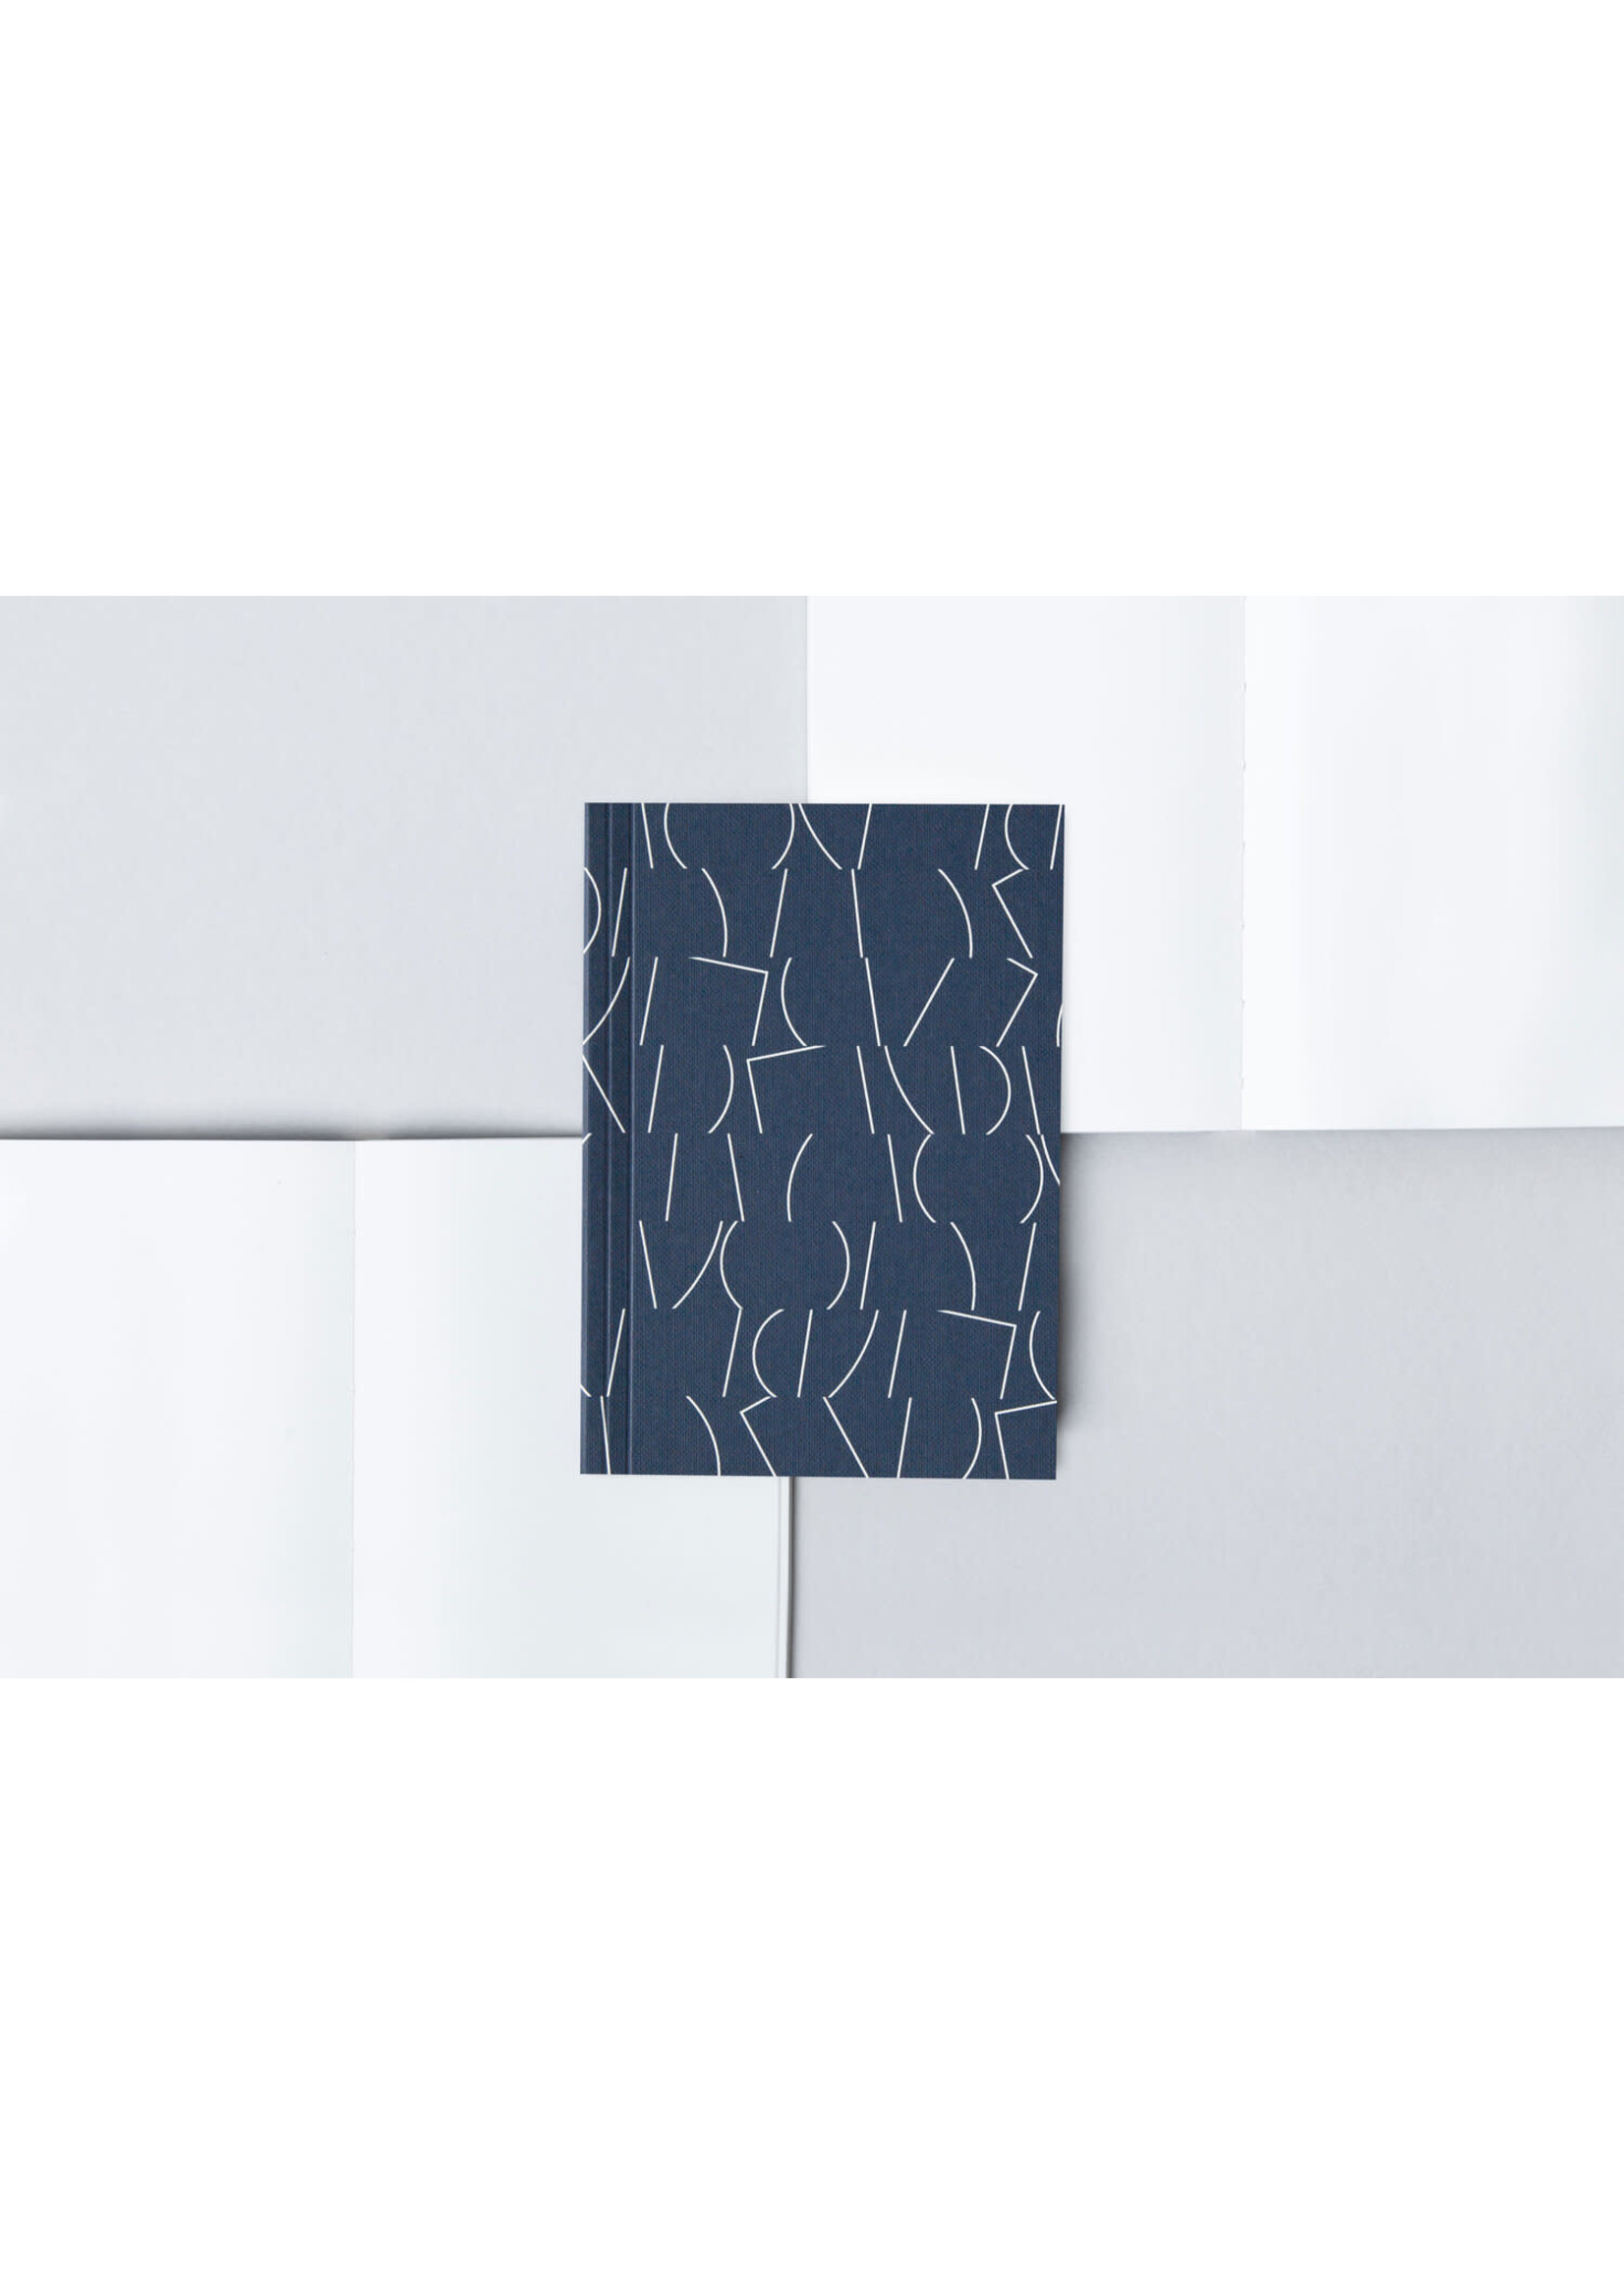 Ola Ola A6 Layflat Notebook - Sol Print in Navy/Plain pages